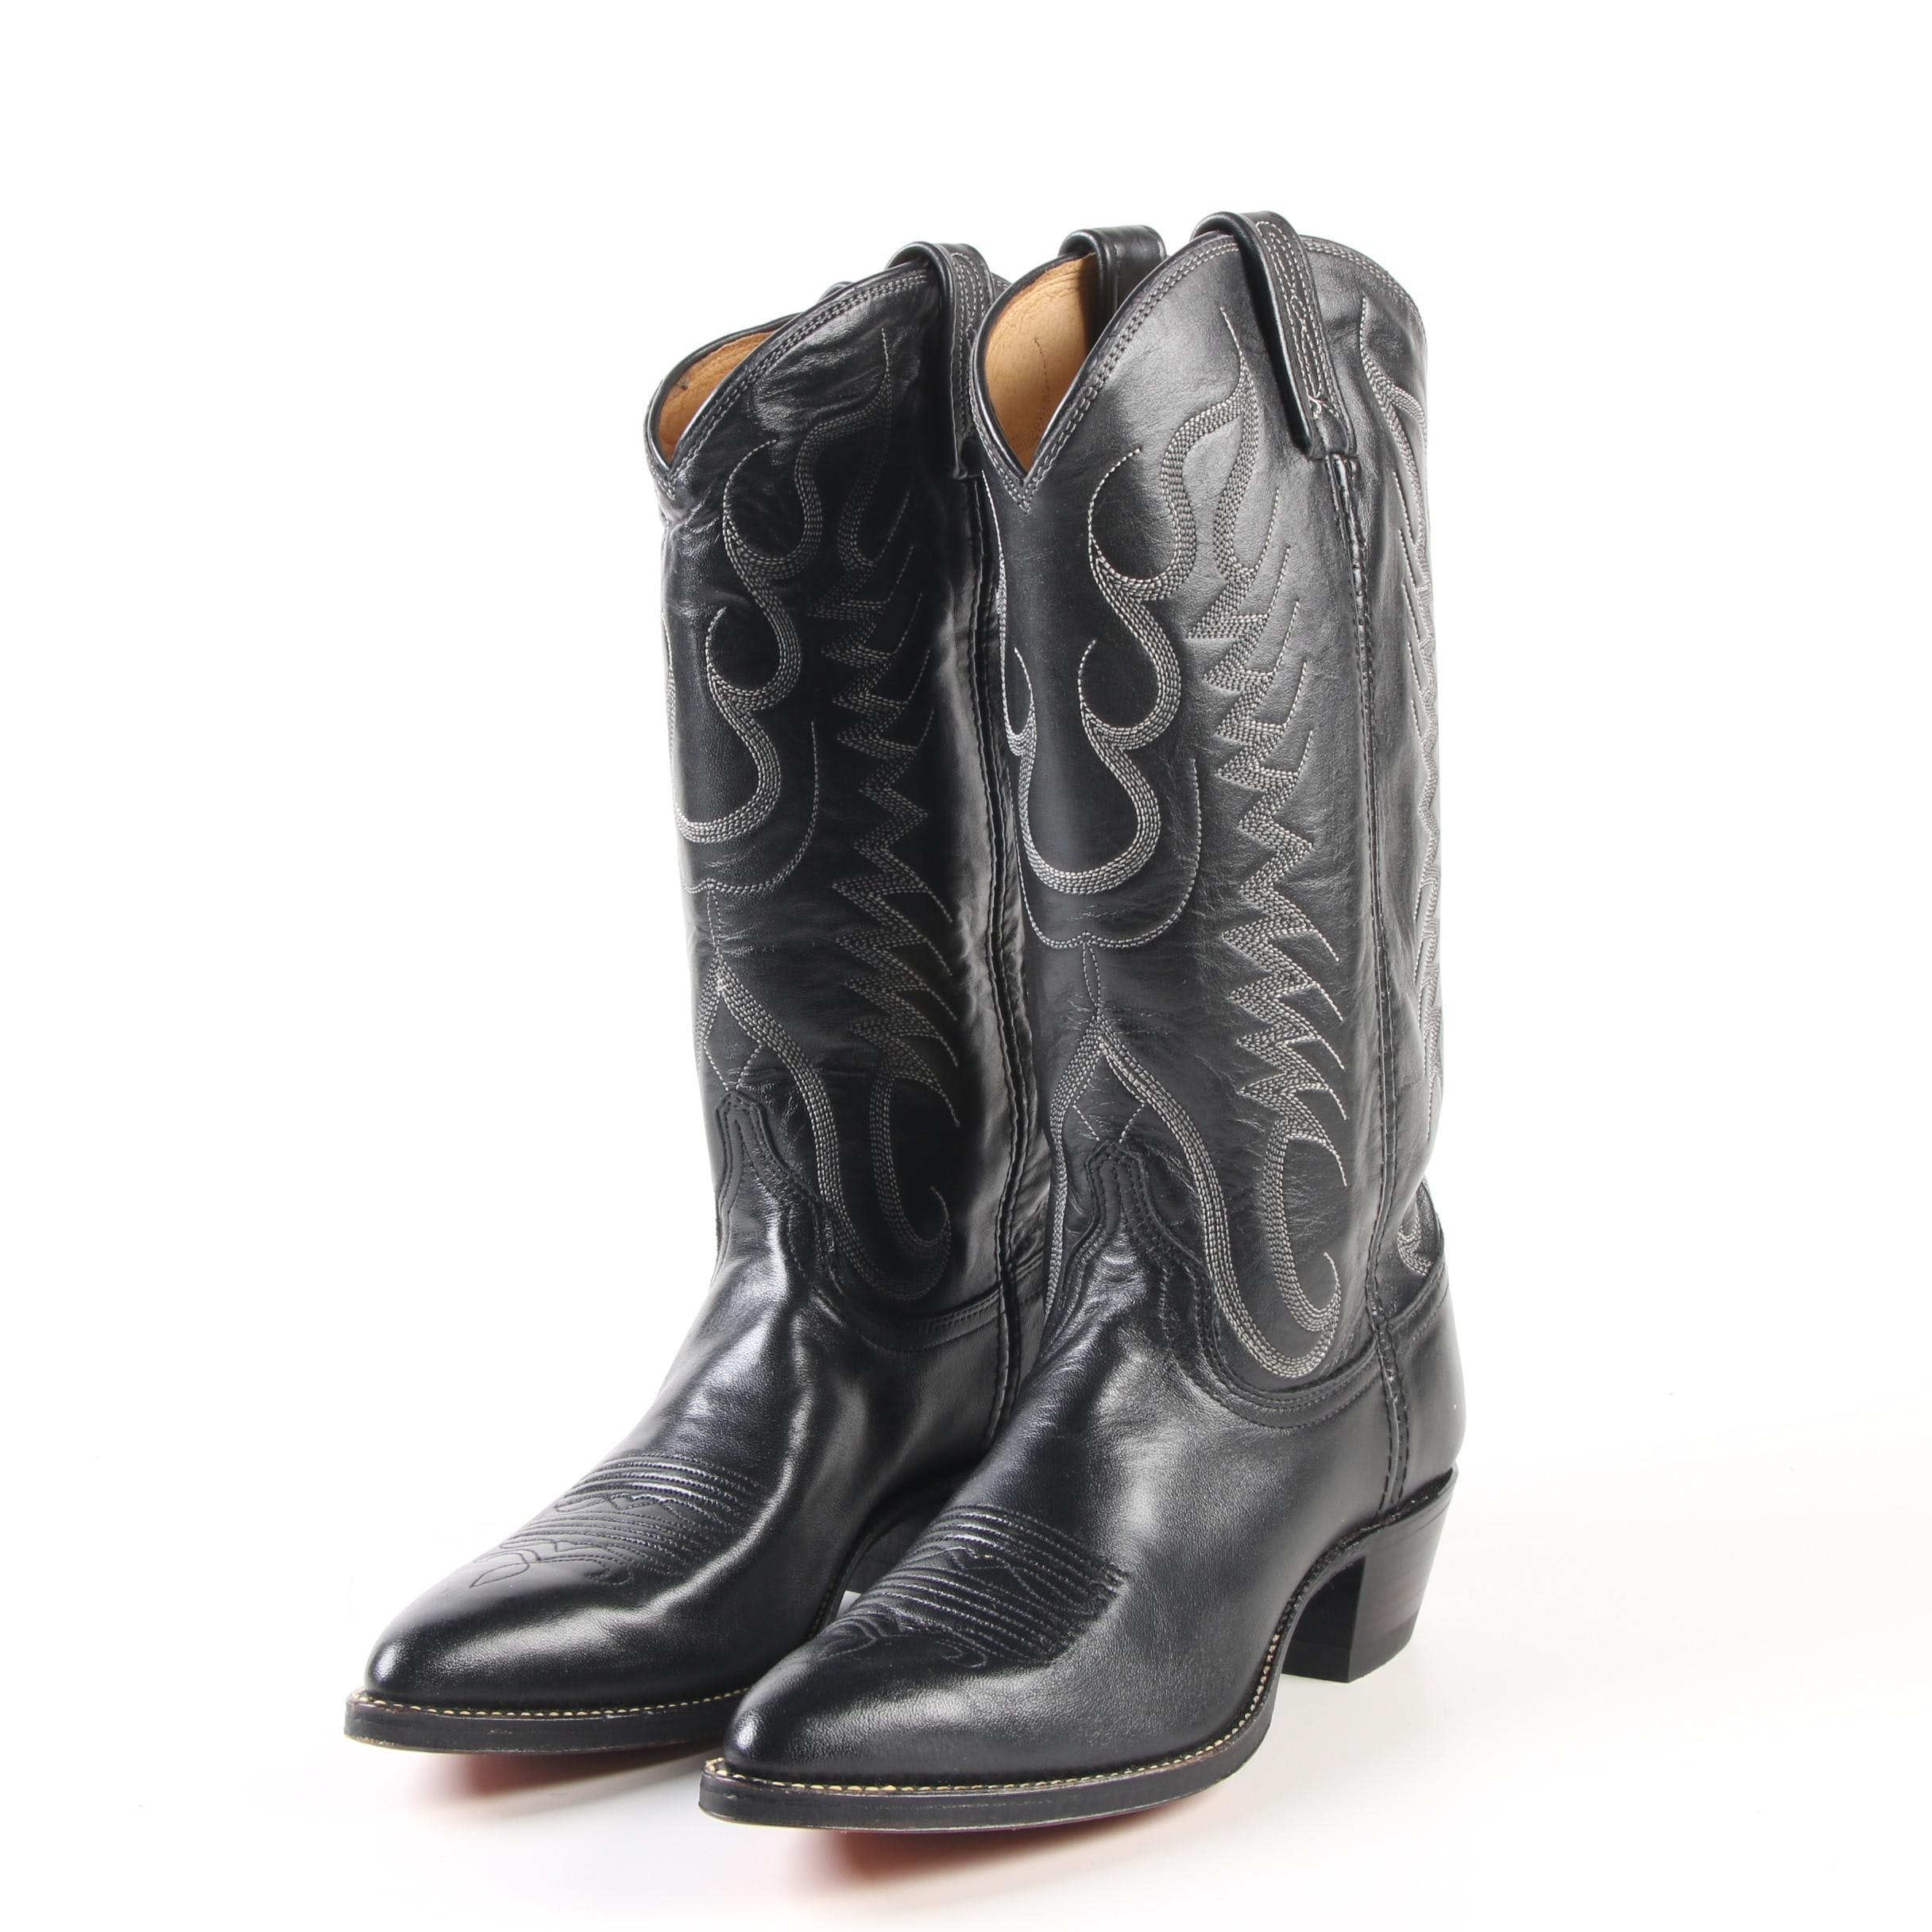 Women's Dan Post Pointed Toe Western Boots in Black Leather